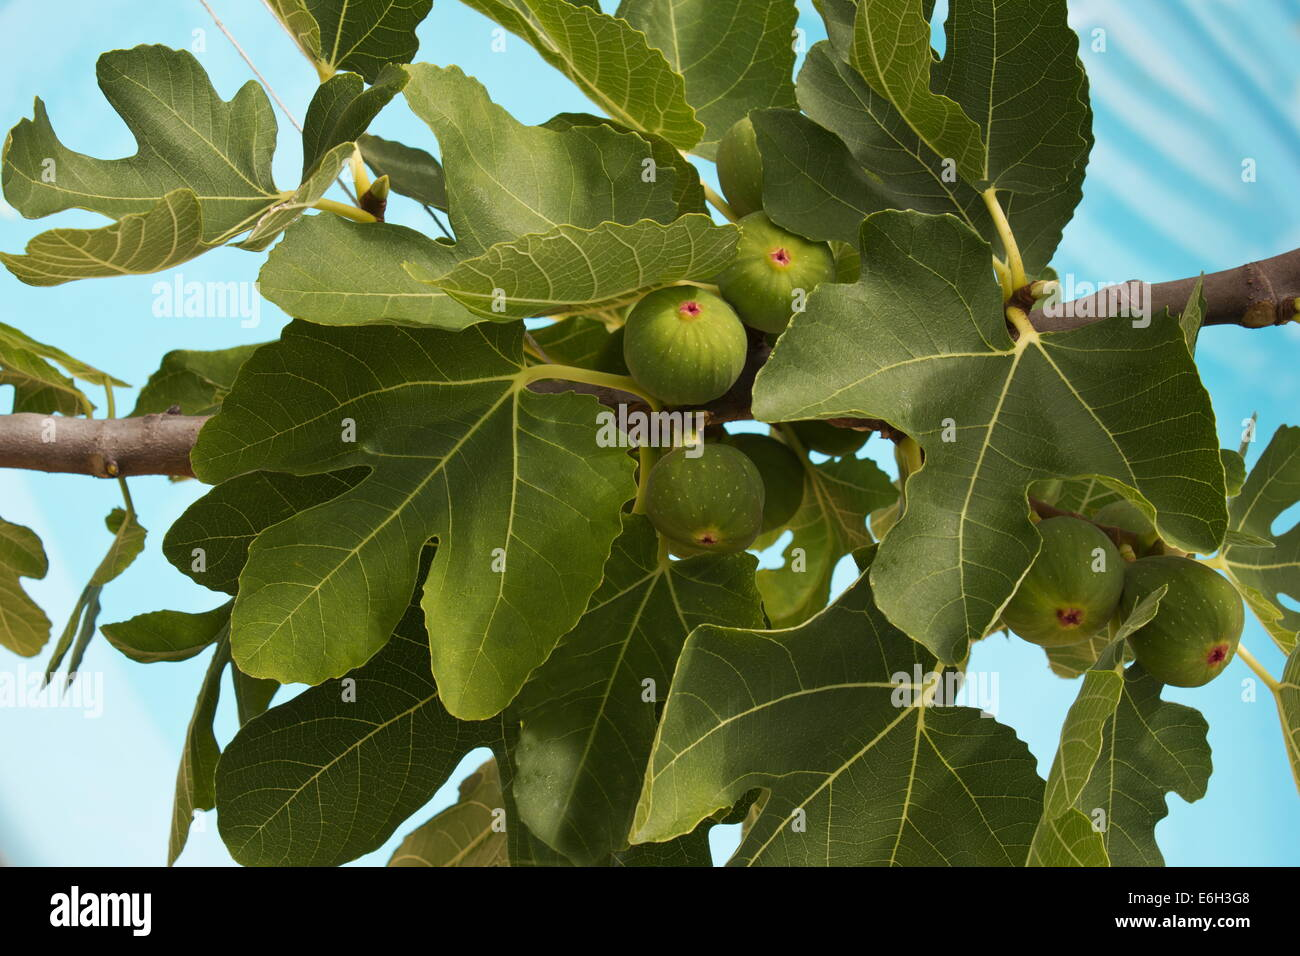 Figs (ficus carica)on a branch against water background - Stock Image